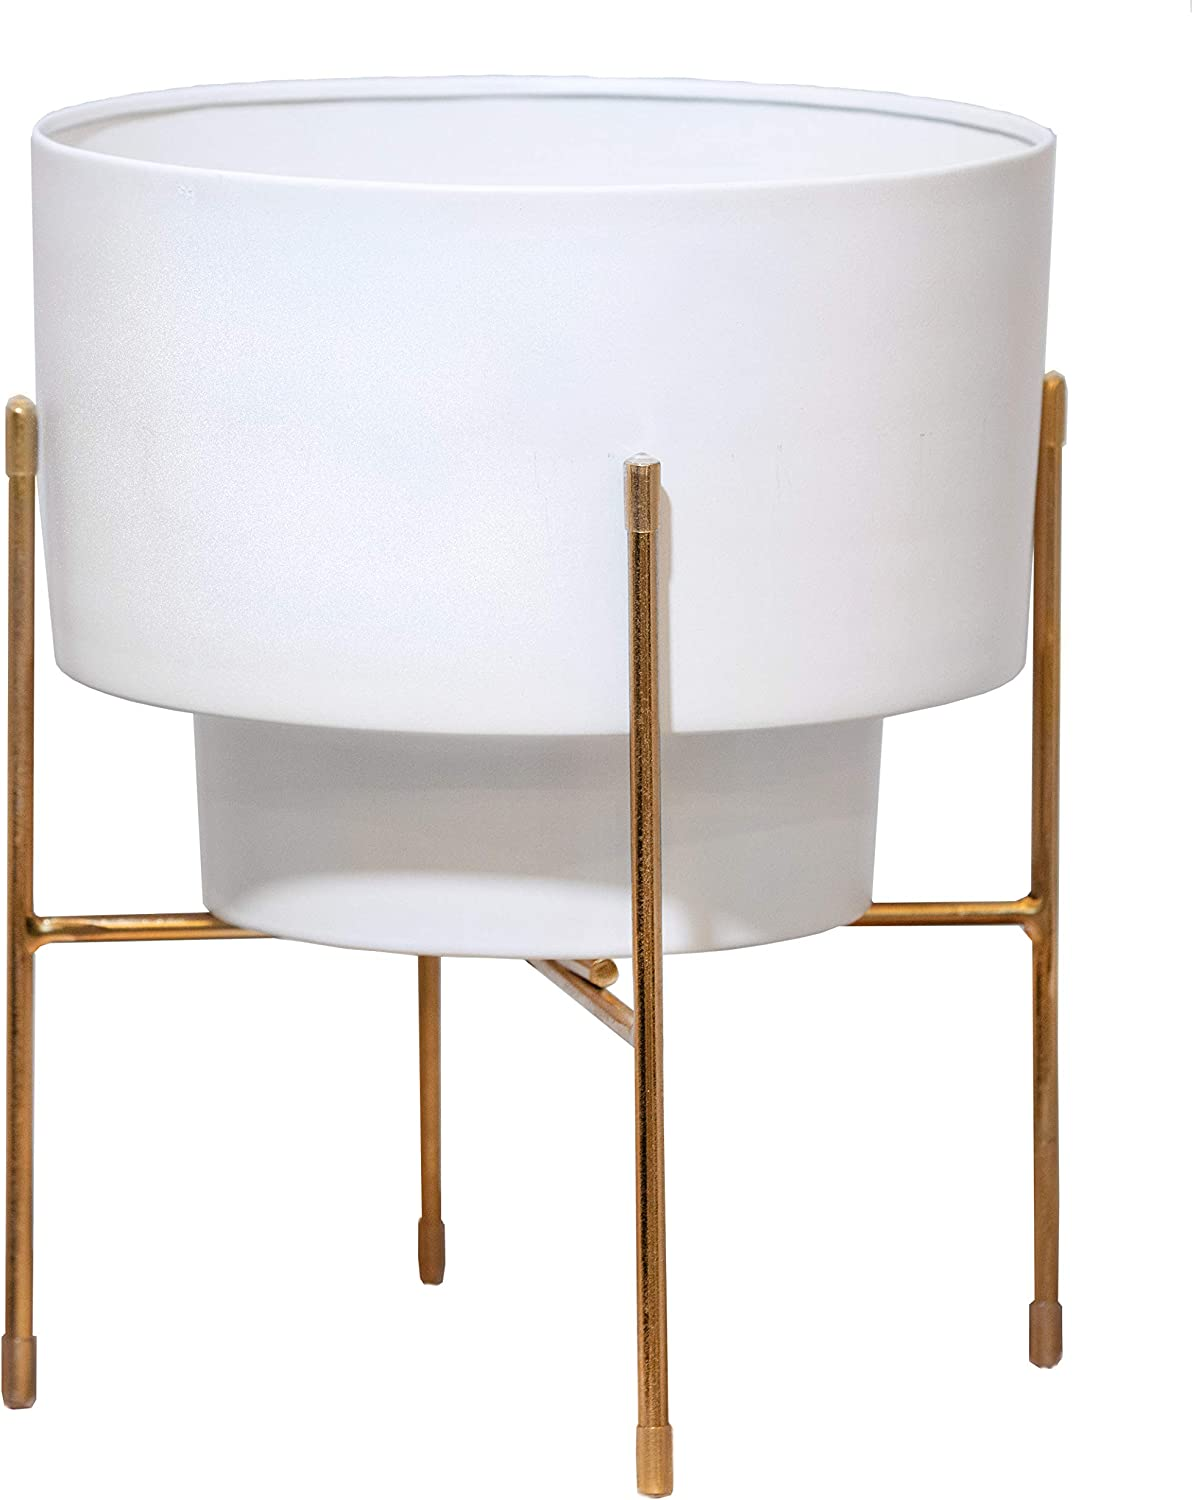 Green Heron Home Goods - Mid Century Modern Planter (White) with Gold Metal Stand - 14 in (H) x 11 (W)…